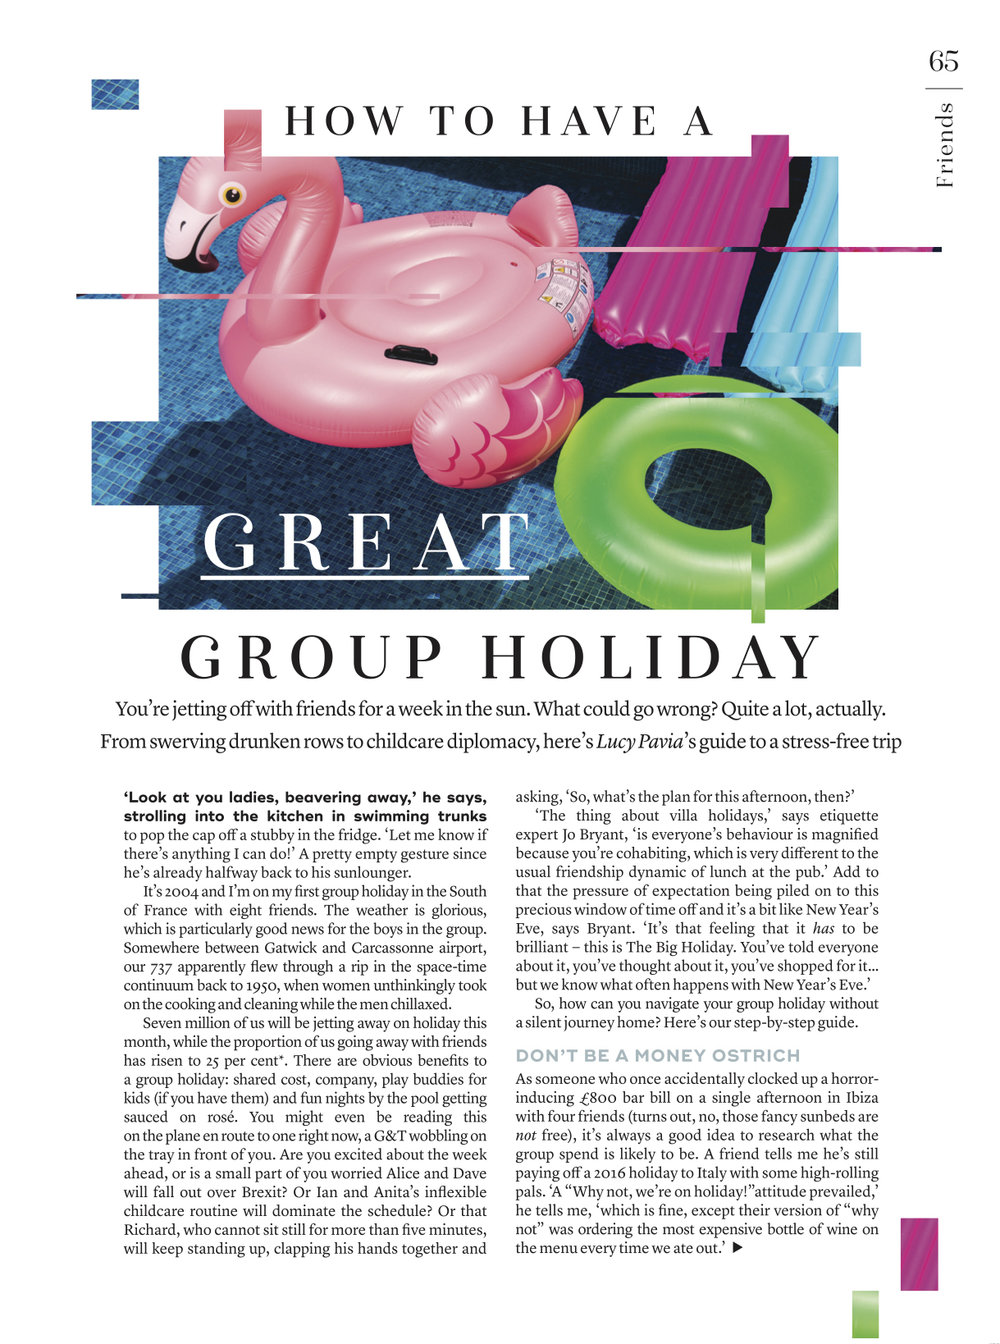 Group holiday feature .jpg